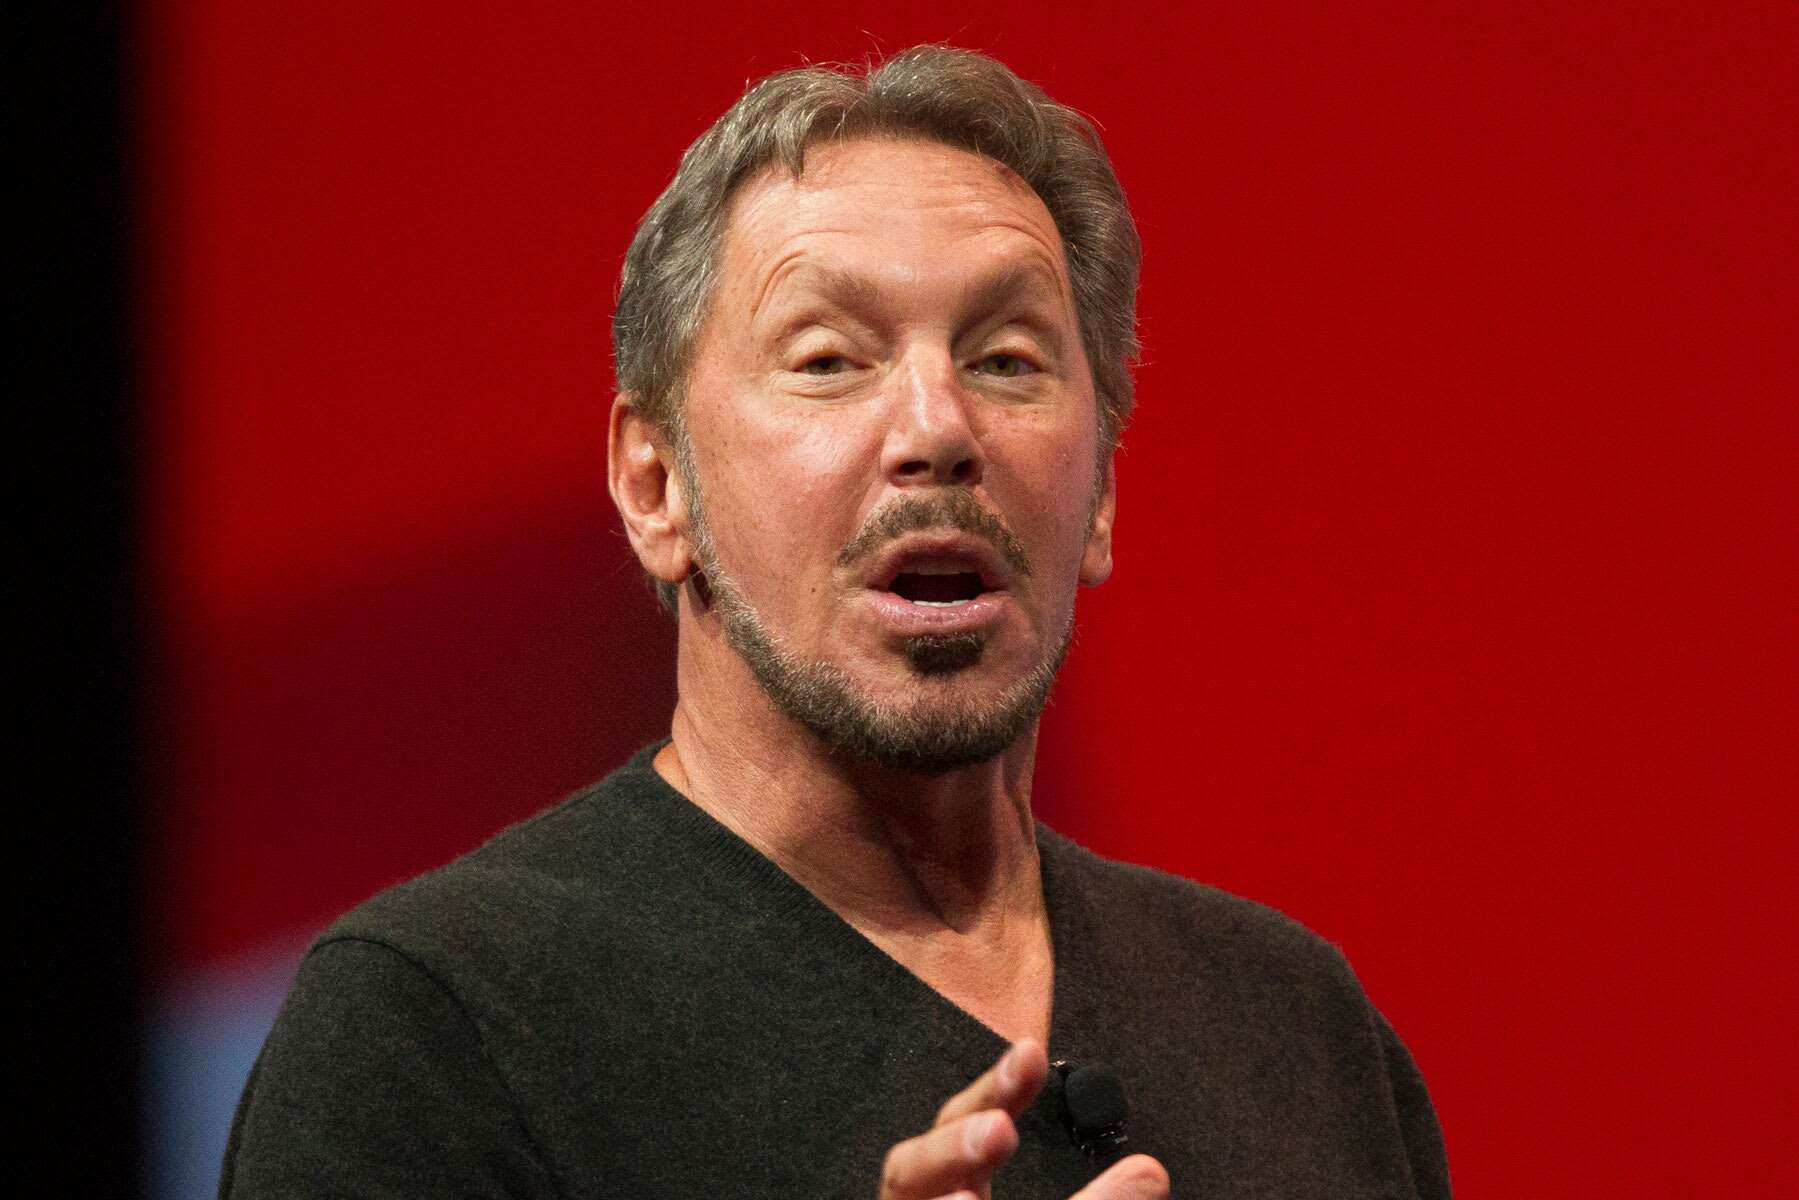 Larry Ellison Inspirational Quotes in Hindi